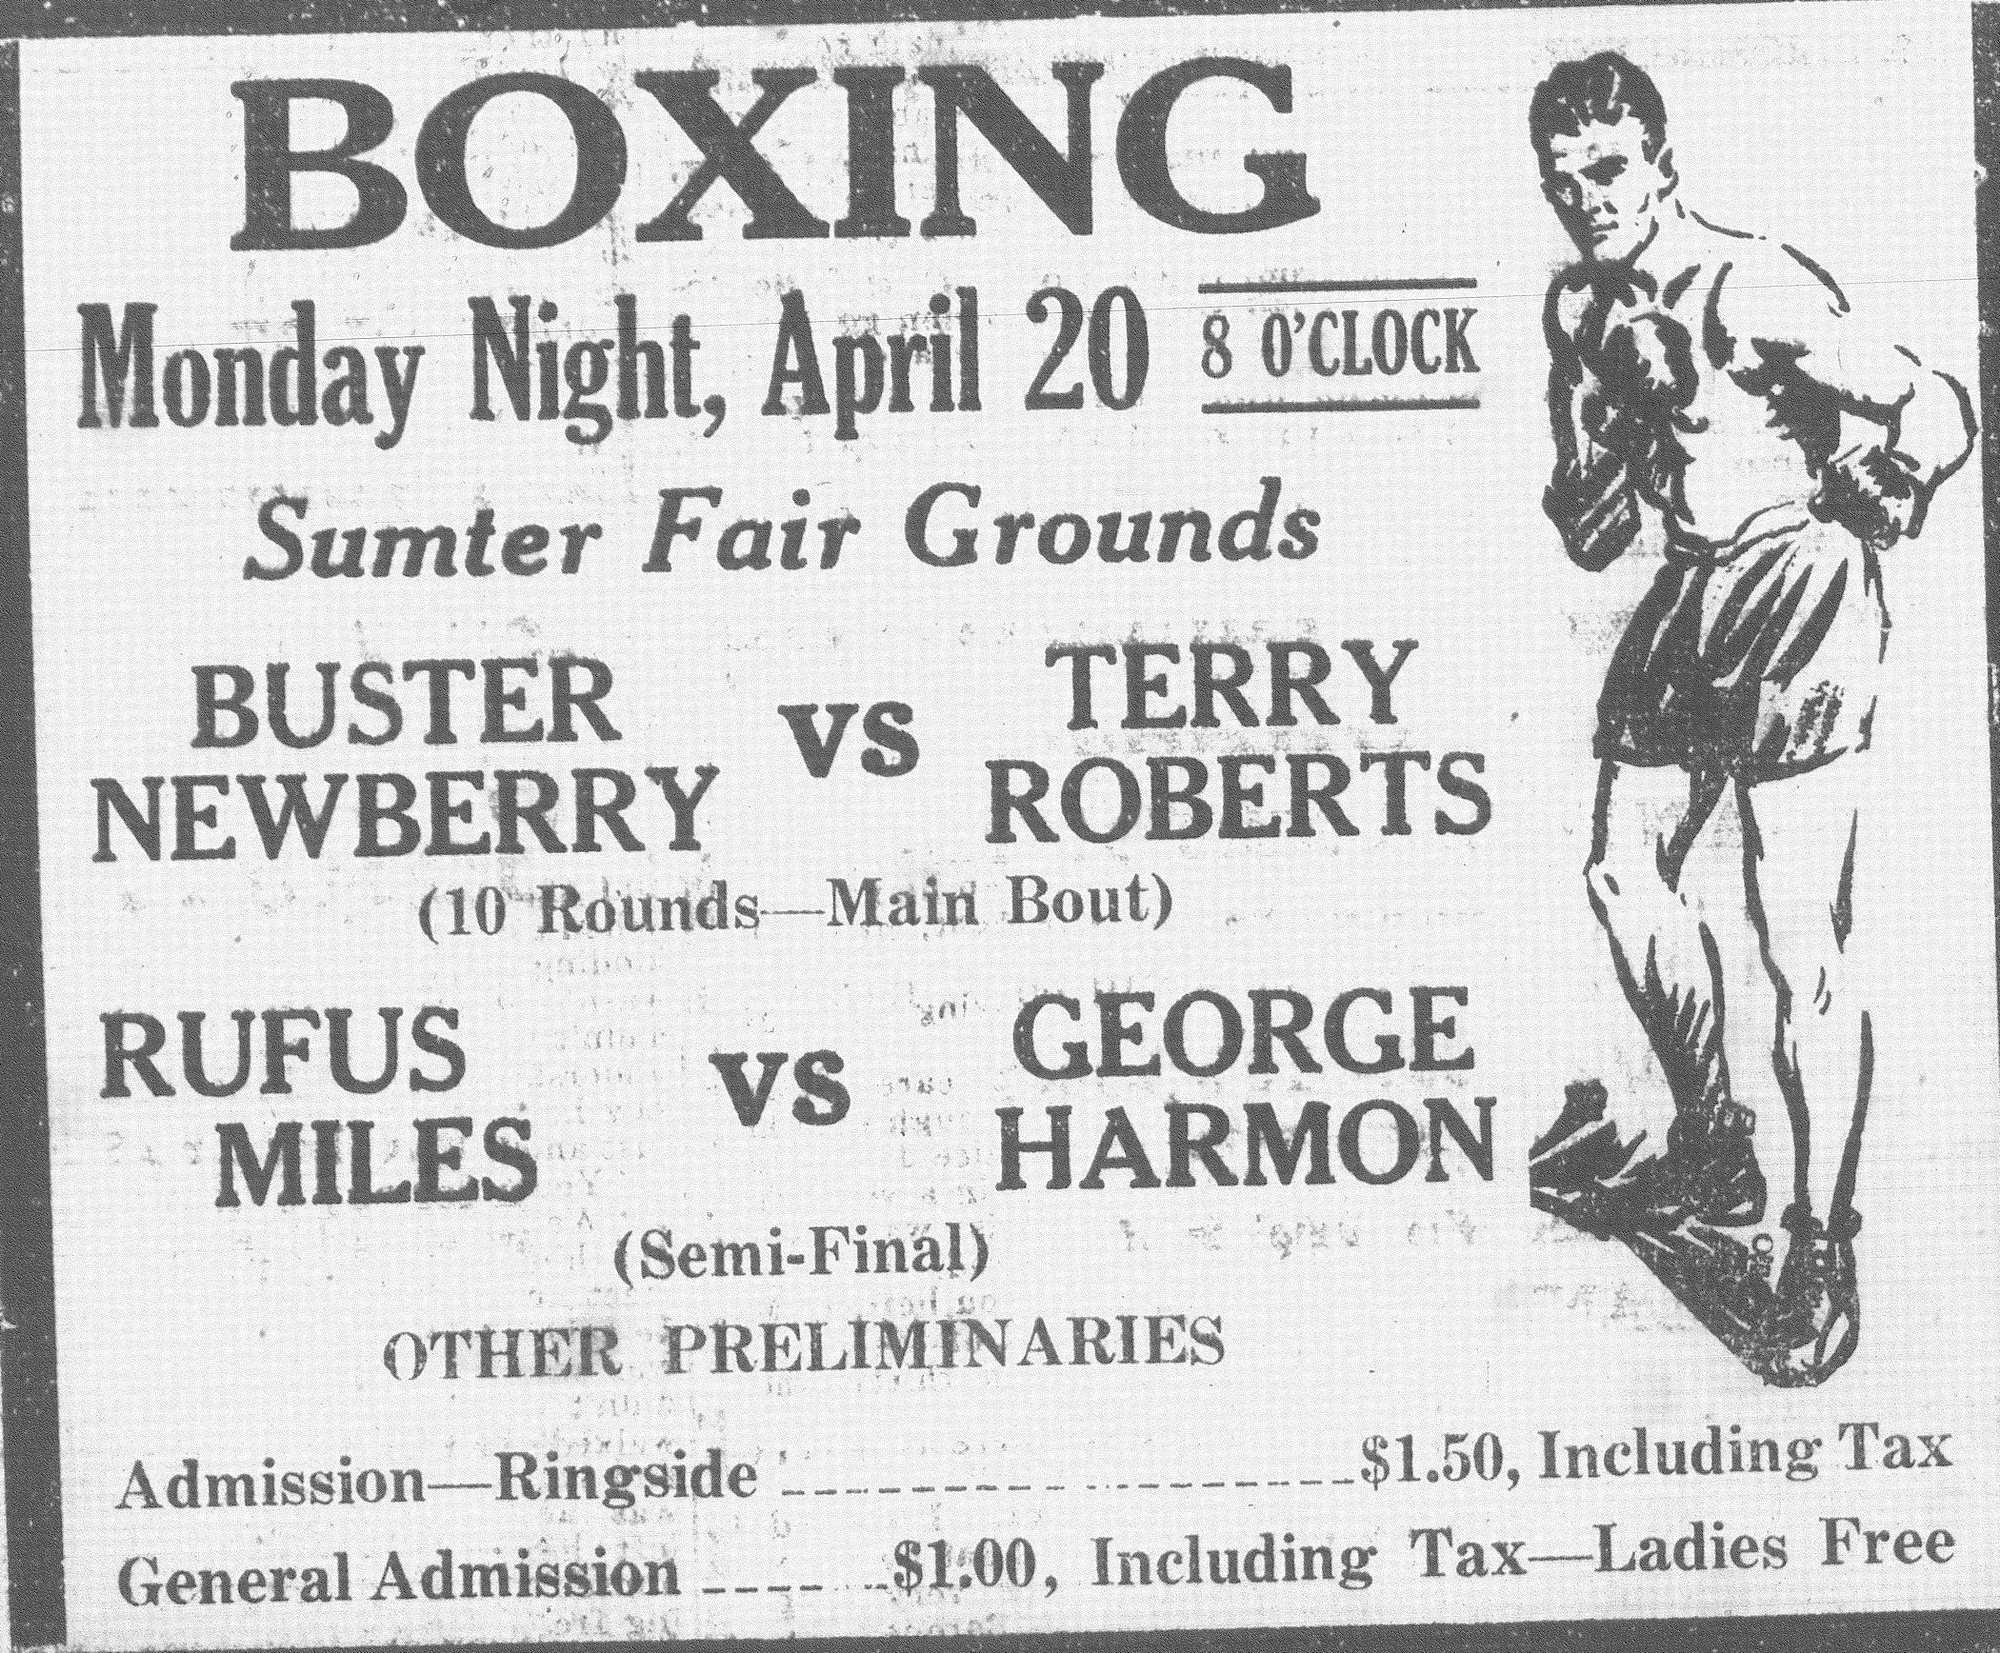 Boxing became popular in Sumter, with matches being held at the fairgrounds and Sunset Lake (Second Mill).